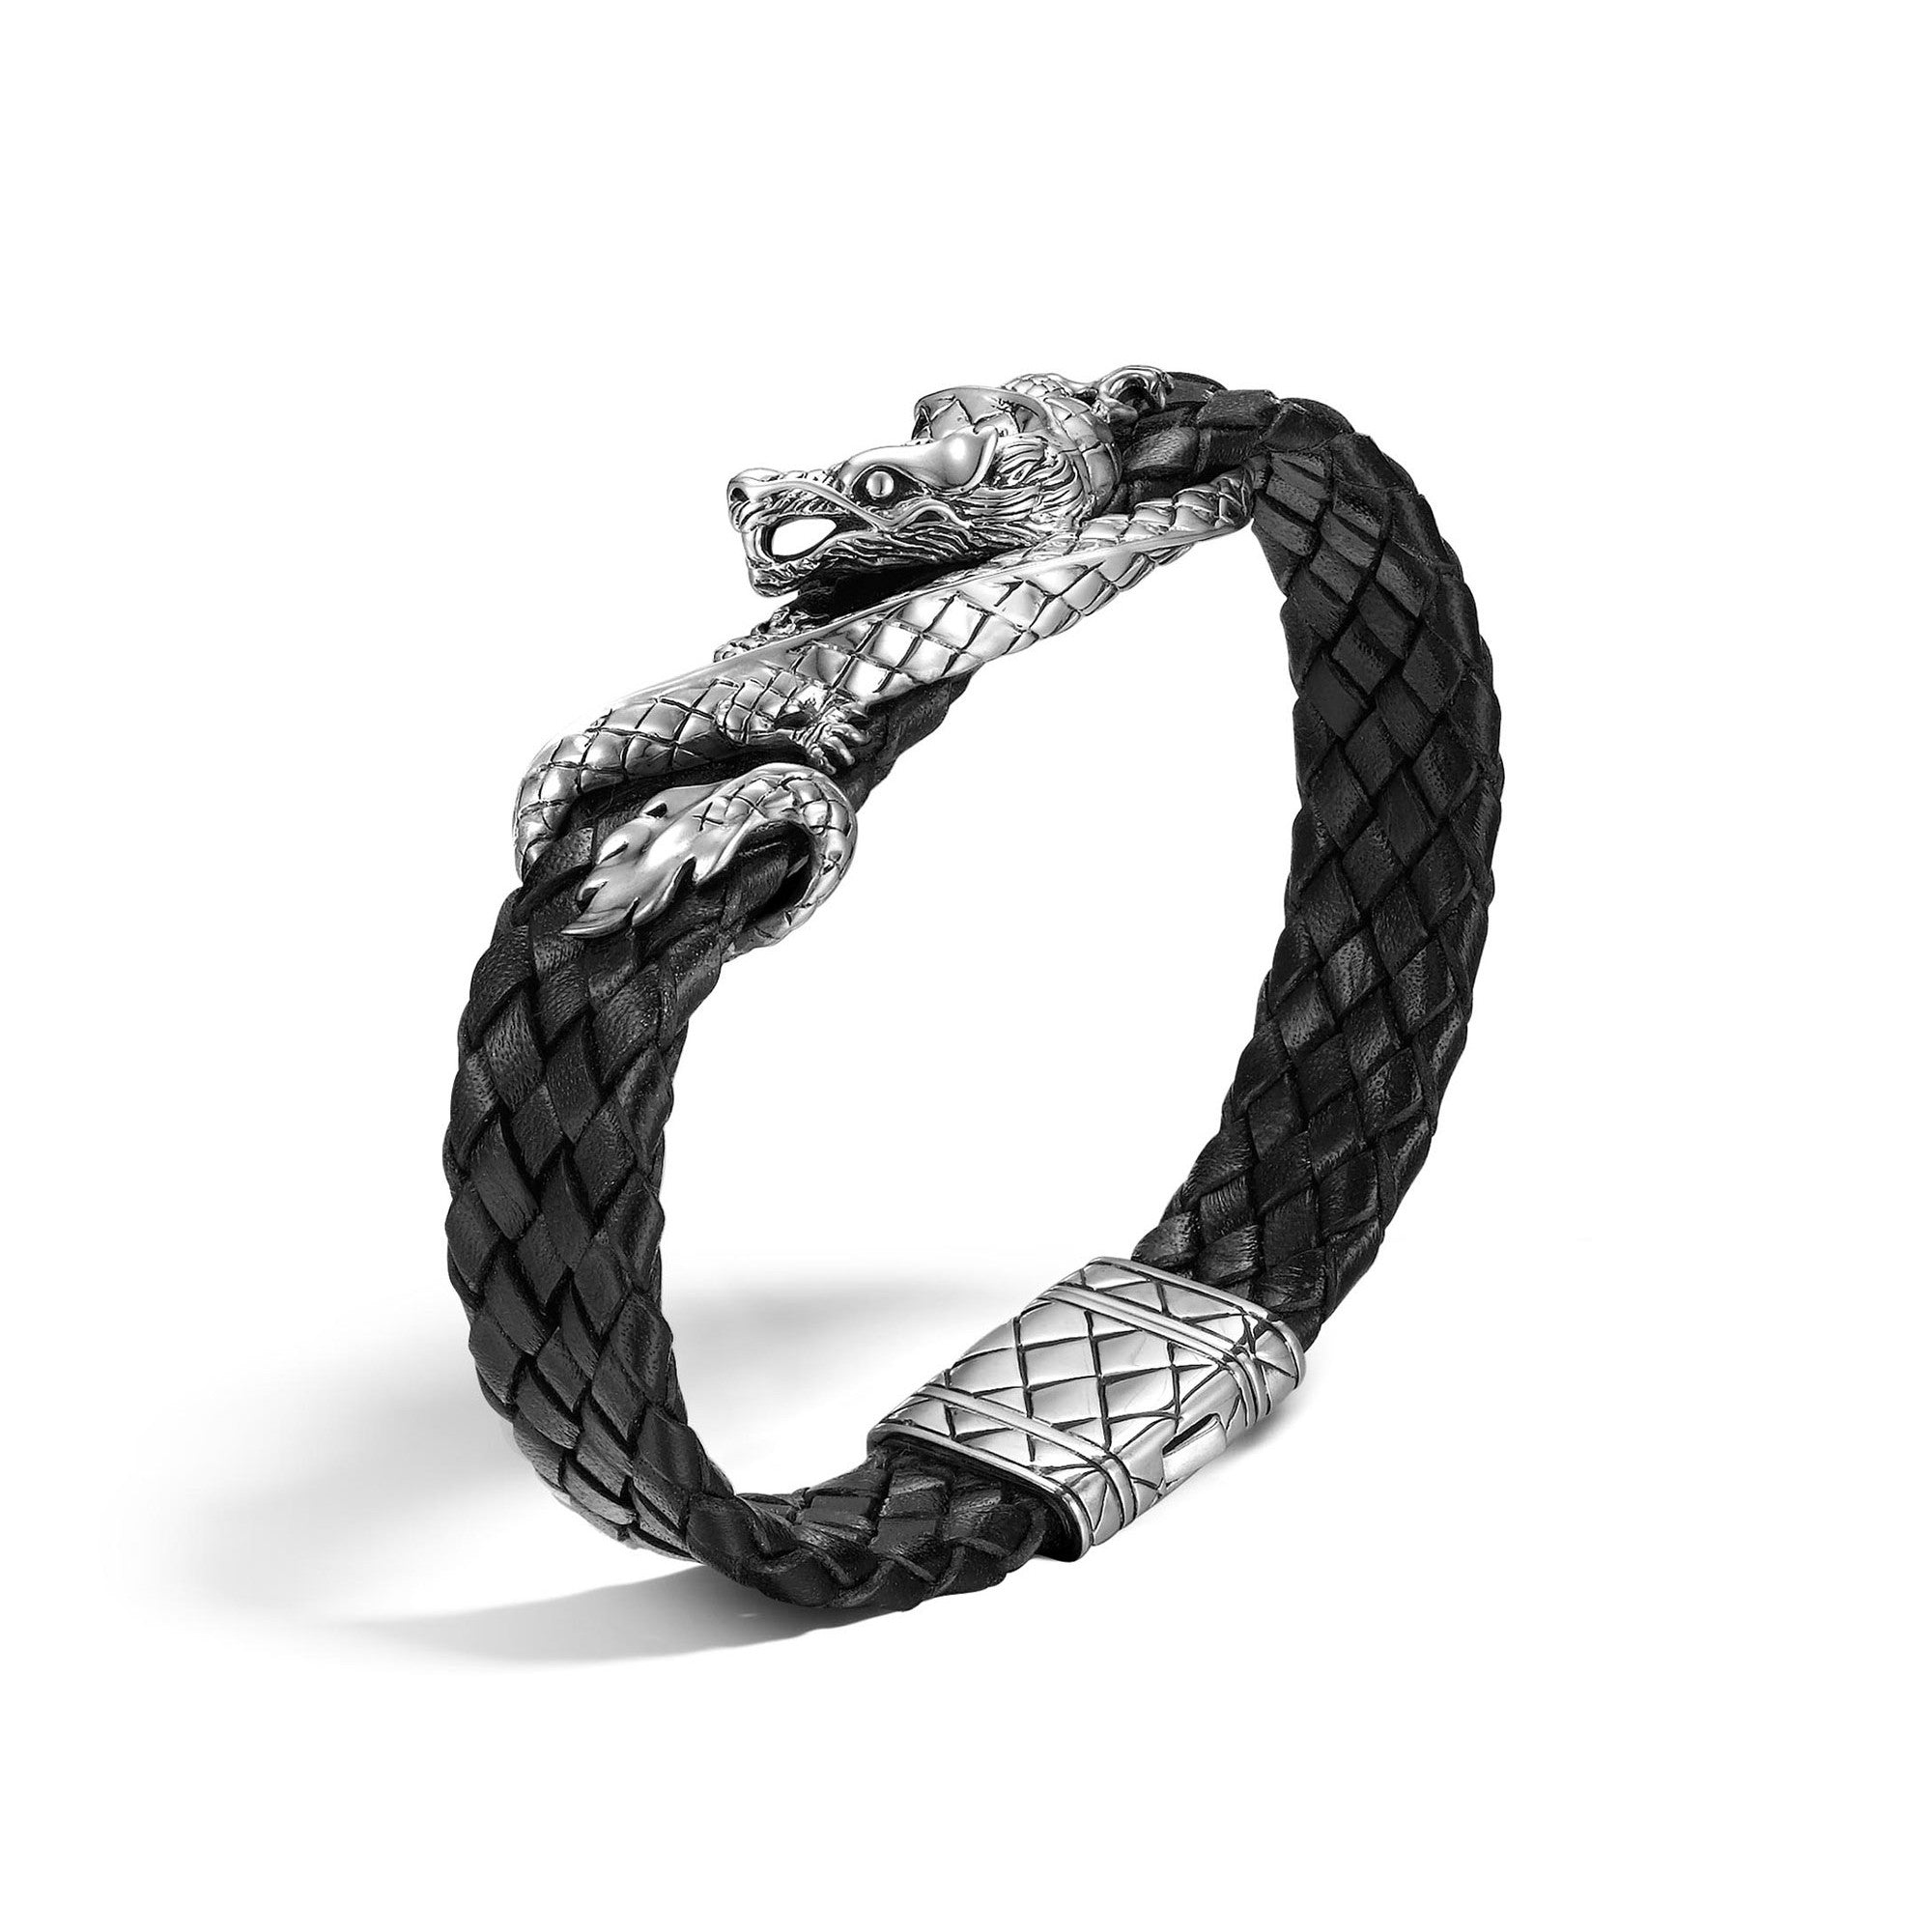 Legends Naga Woven Leather Bracelet